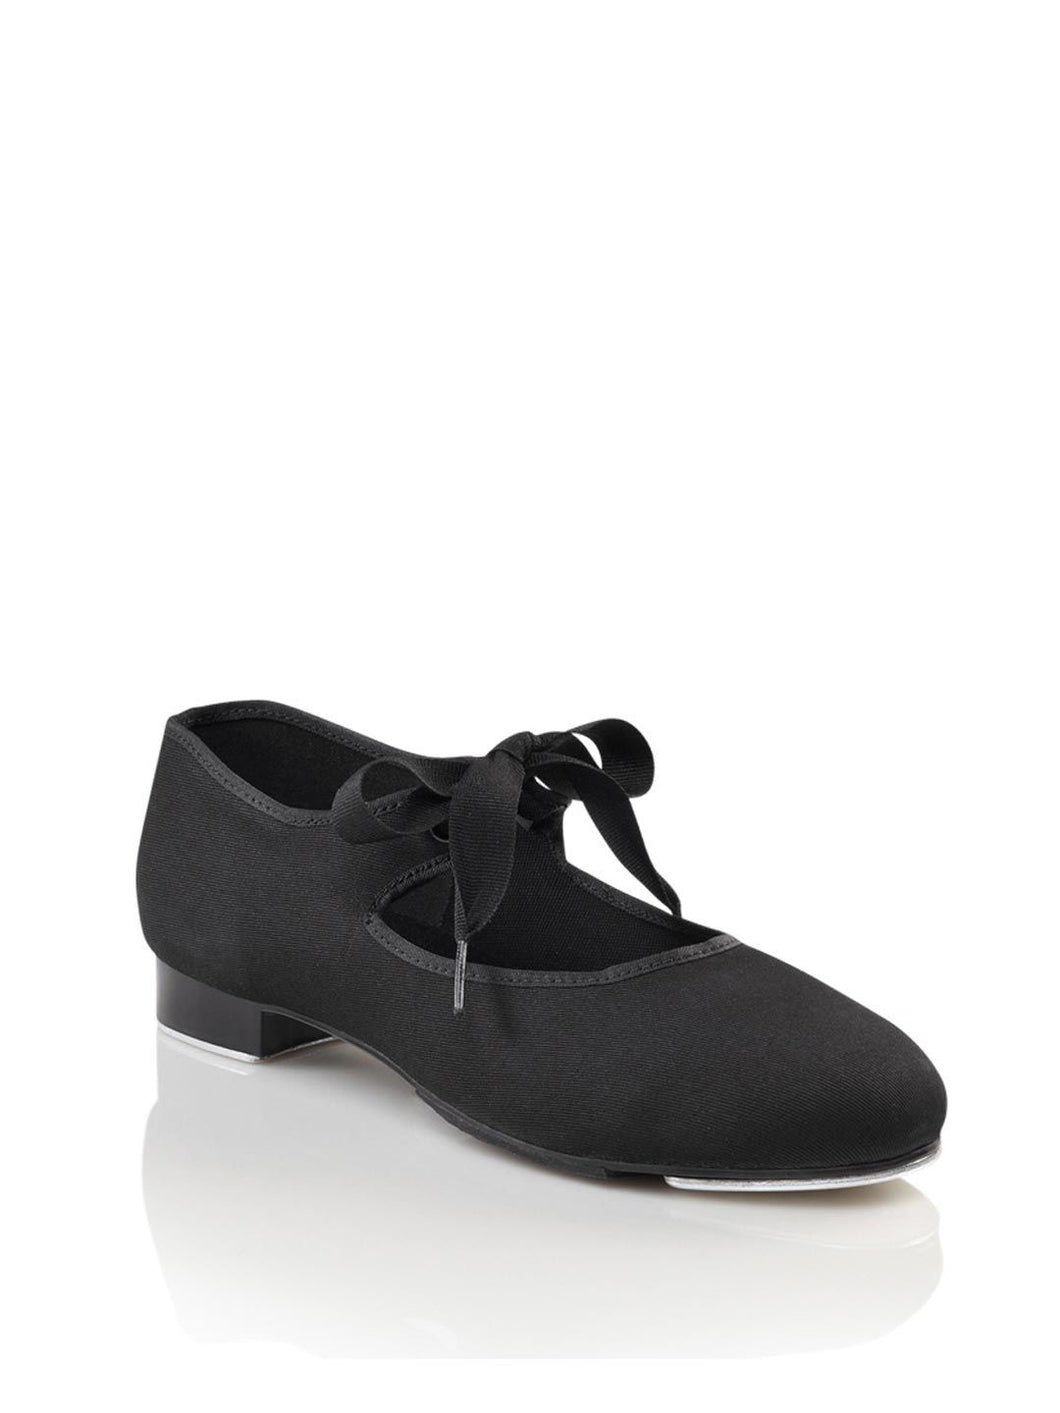 CAPEZIO - Canvas Tyette Tap Shoe - U825